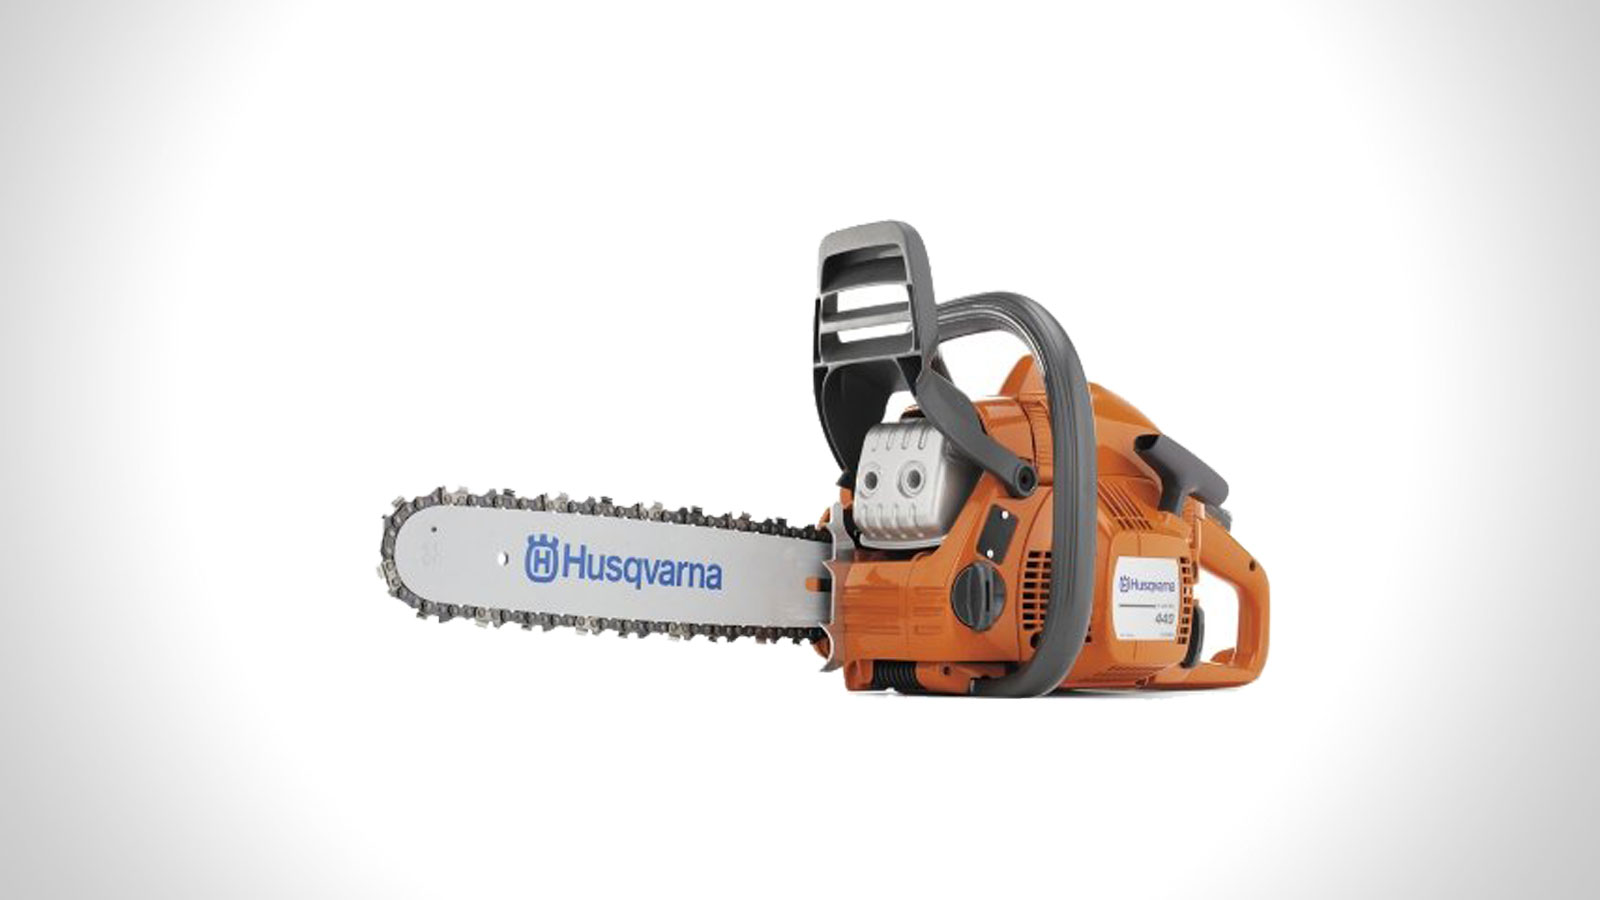 Husqvarrna 440e Gas Chain Saw | gifts for men | the best tool gift ideas